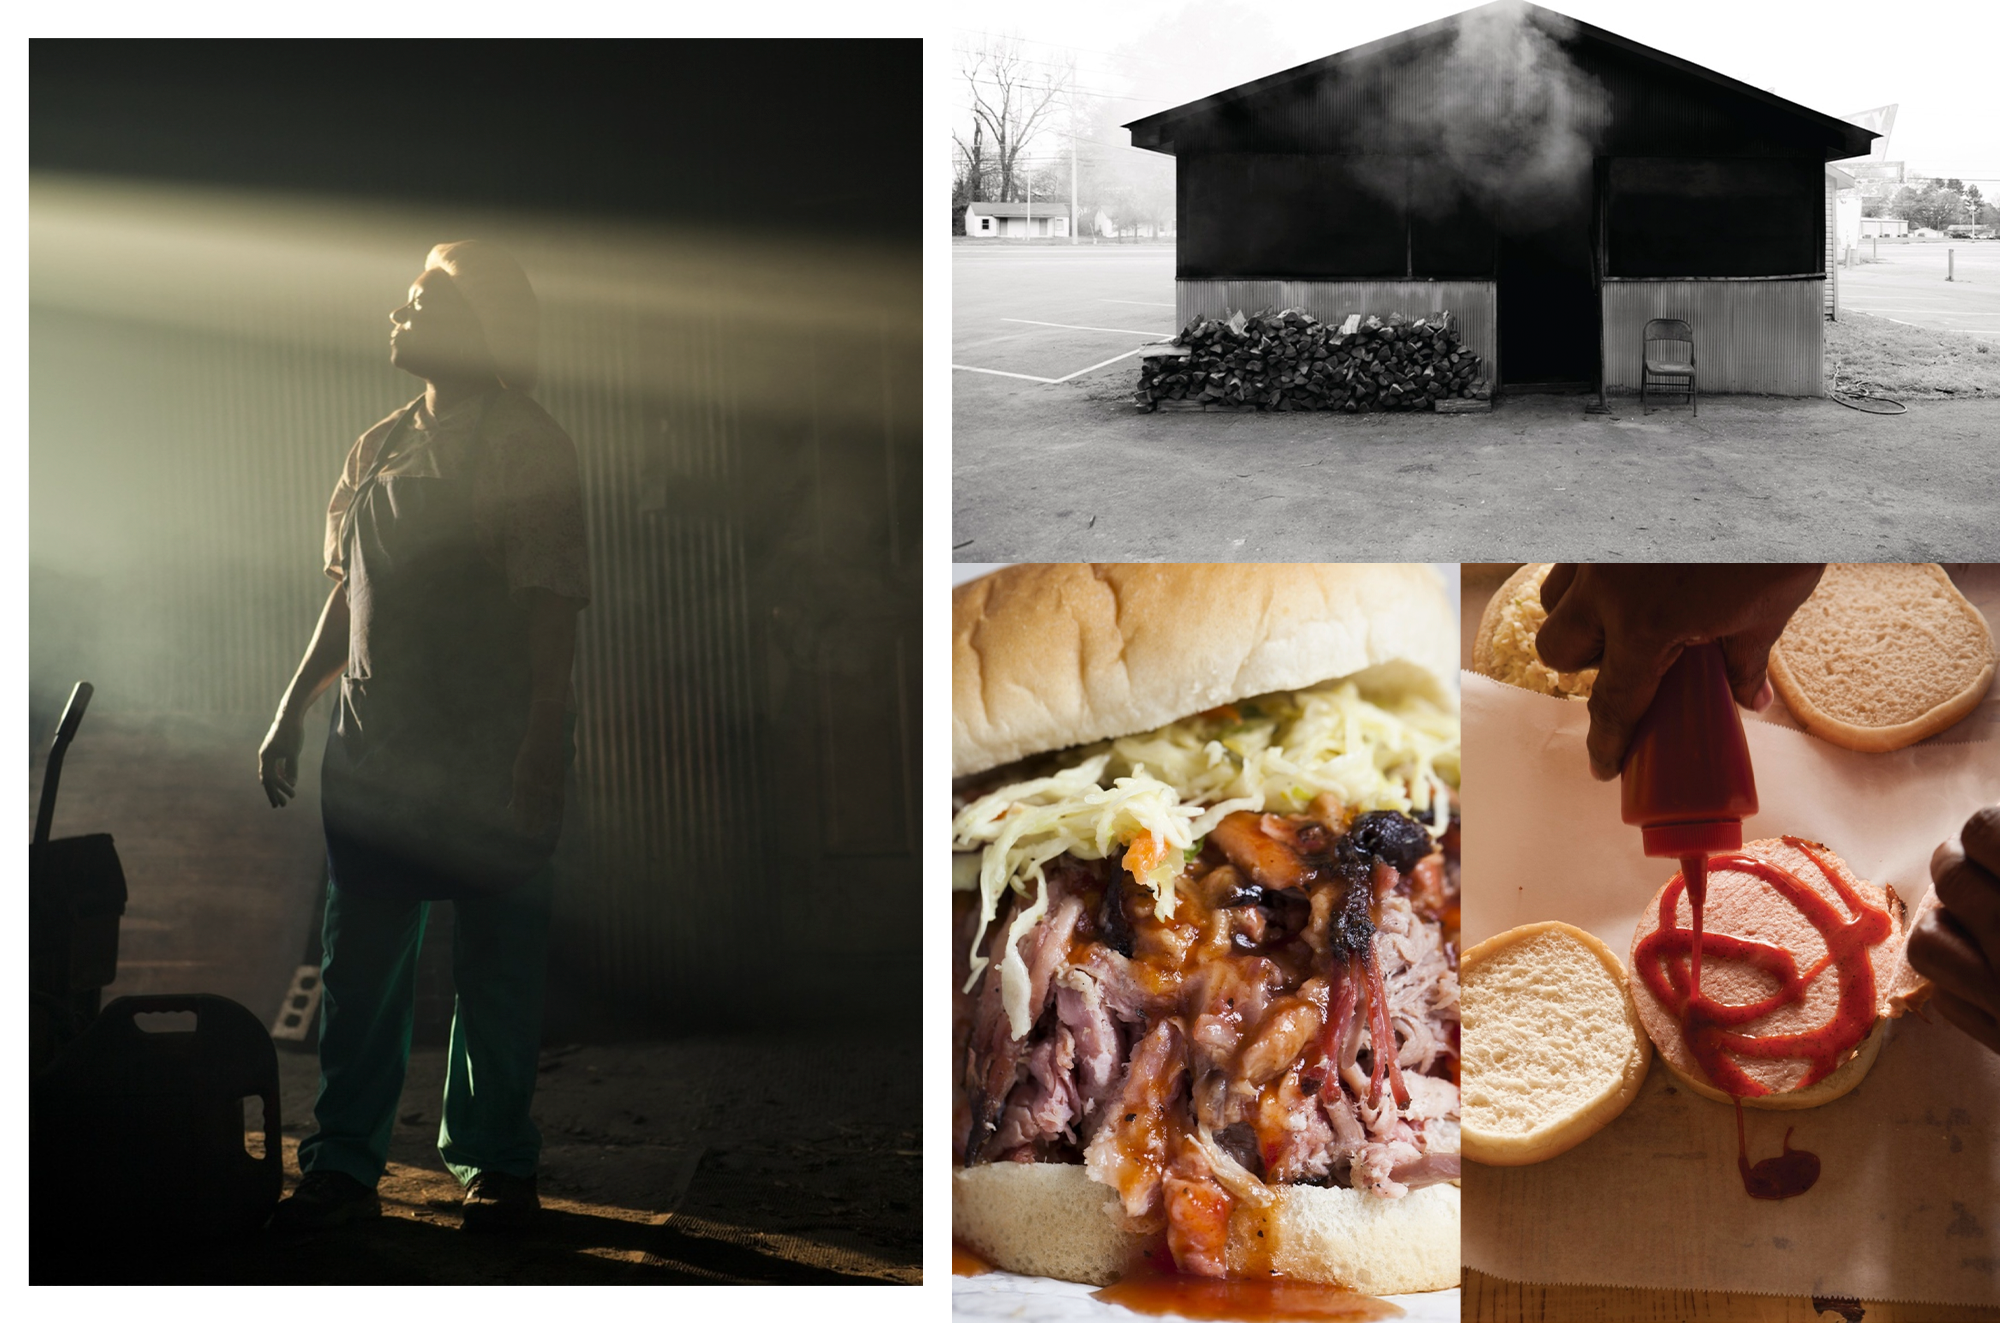 composite of Pitmaster Helen Turner in her smokehouse; photo of the exterior of her smokehouse, her BBQ sandwich, and a sandwich in progress